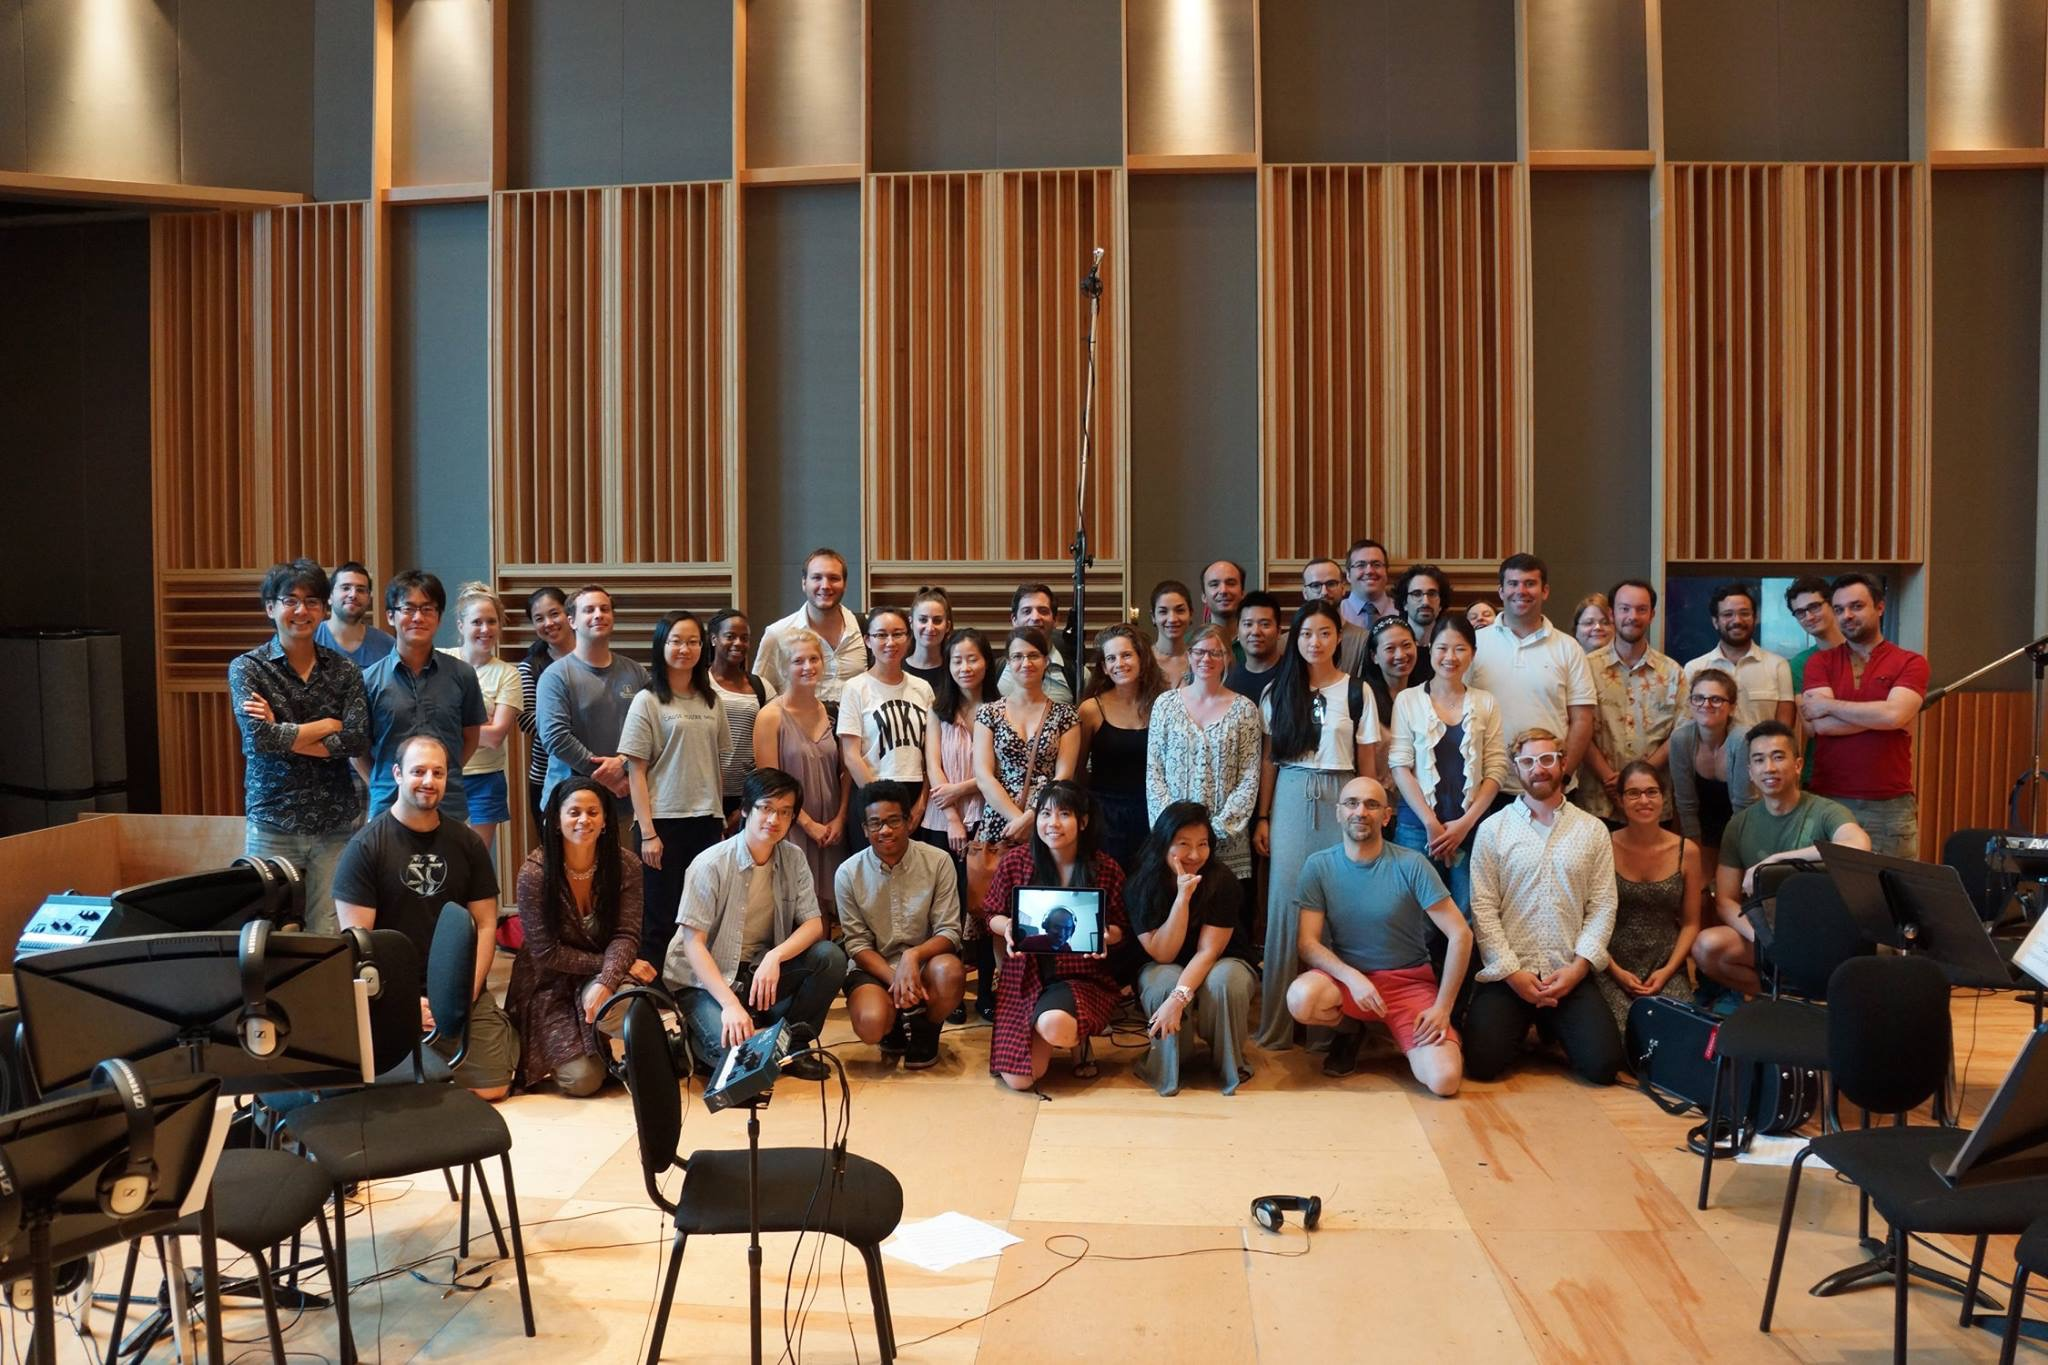 With the SoundRec orchestra after recording the soundtrack for Final Fantasy XV (WGBH Studios).